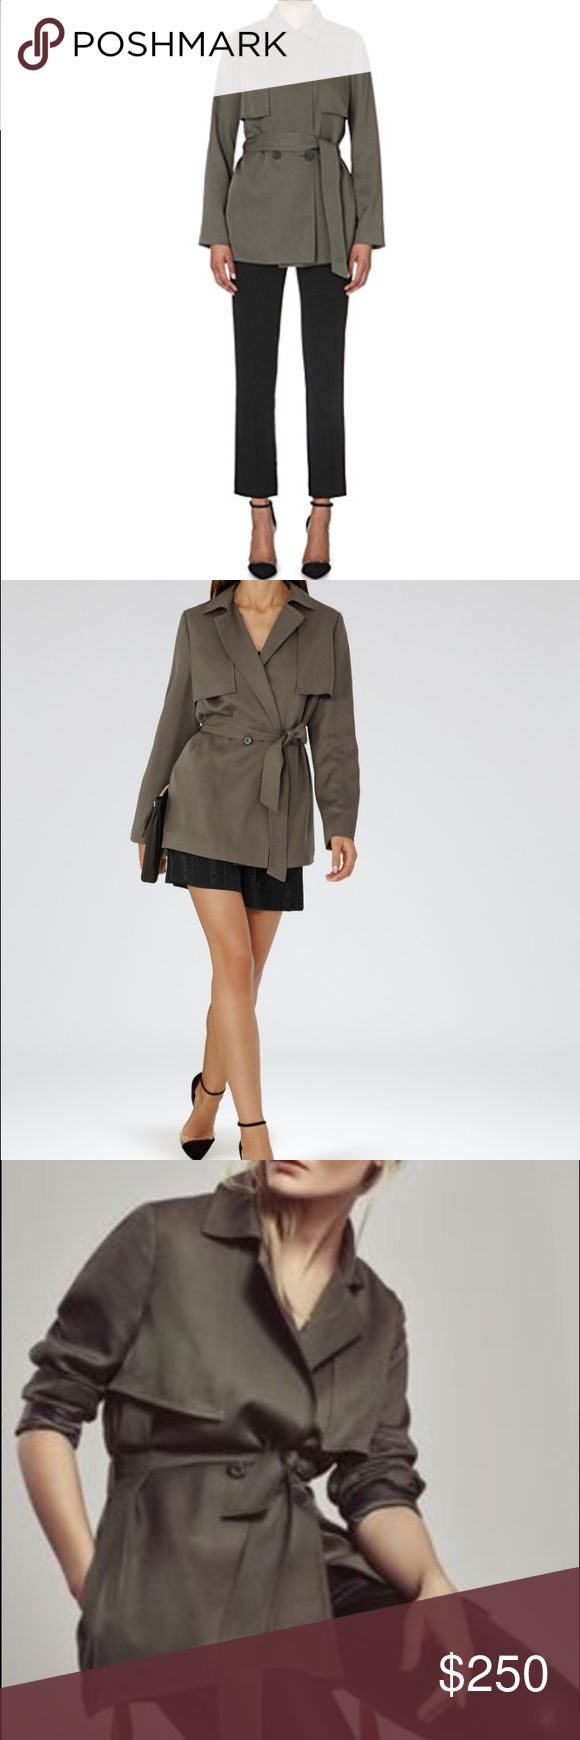 Reiss short trench coat olive color pine/olive color trench coat; Reiss Jackets & Coats Trench Coats